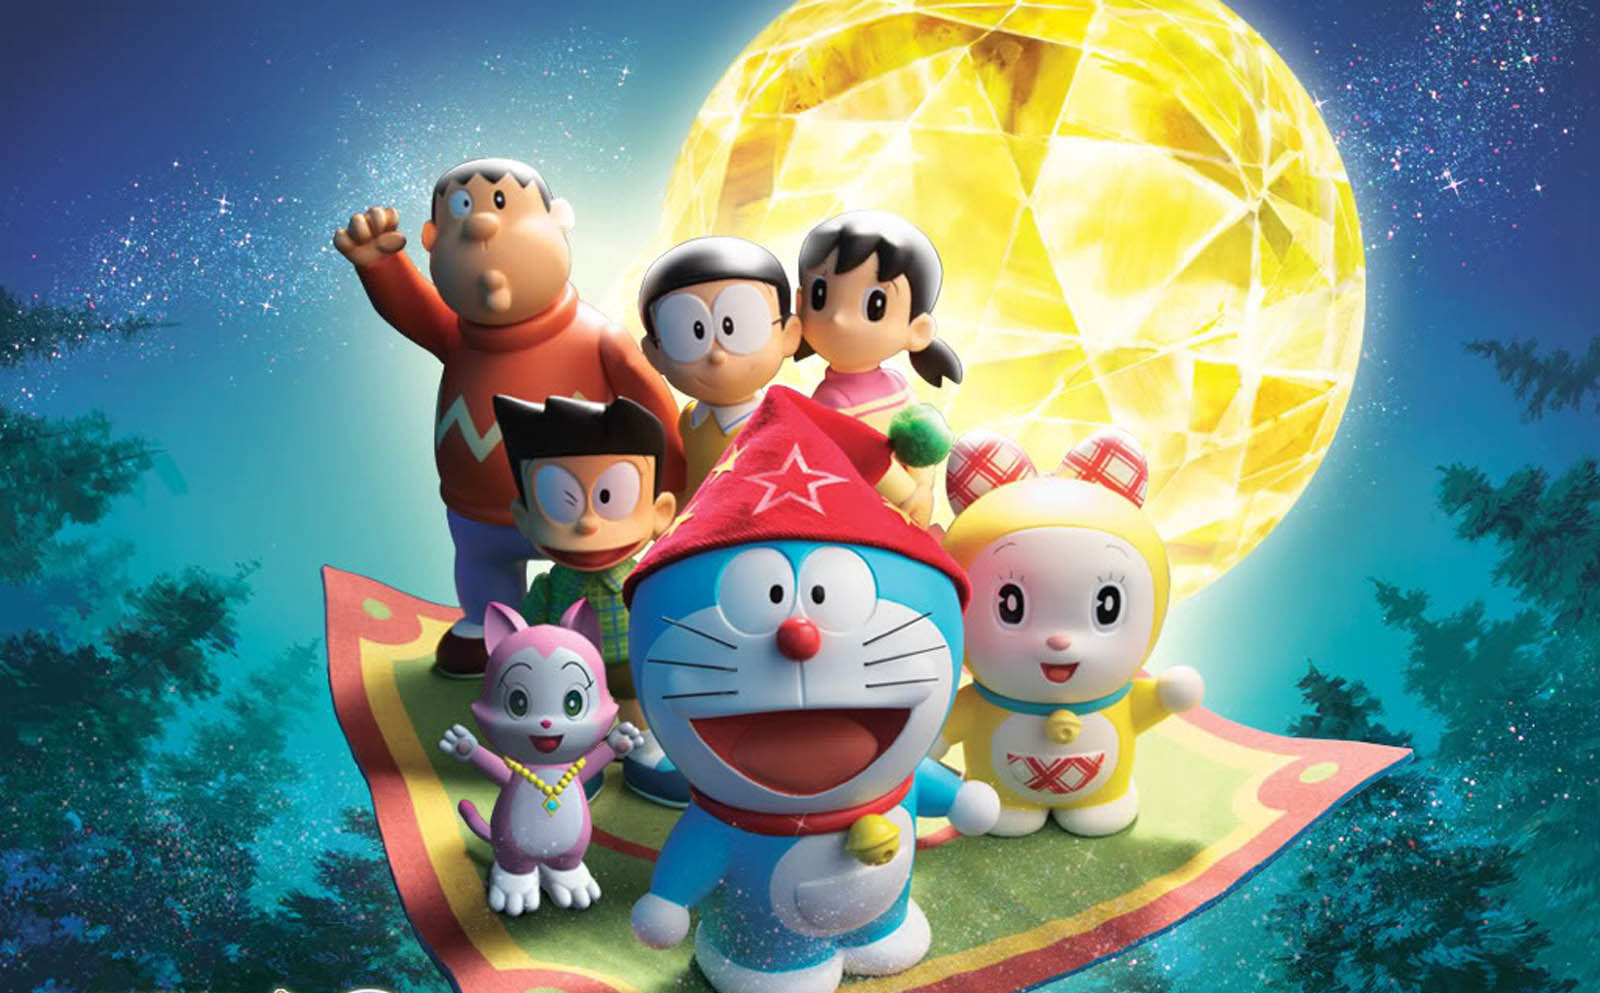 Doraemon Gambar,Nobita,Lucu,Rumah and Animasi HD WallpapersHD ...